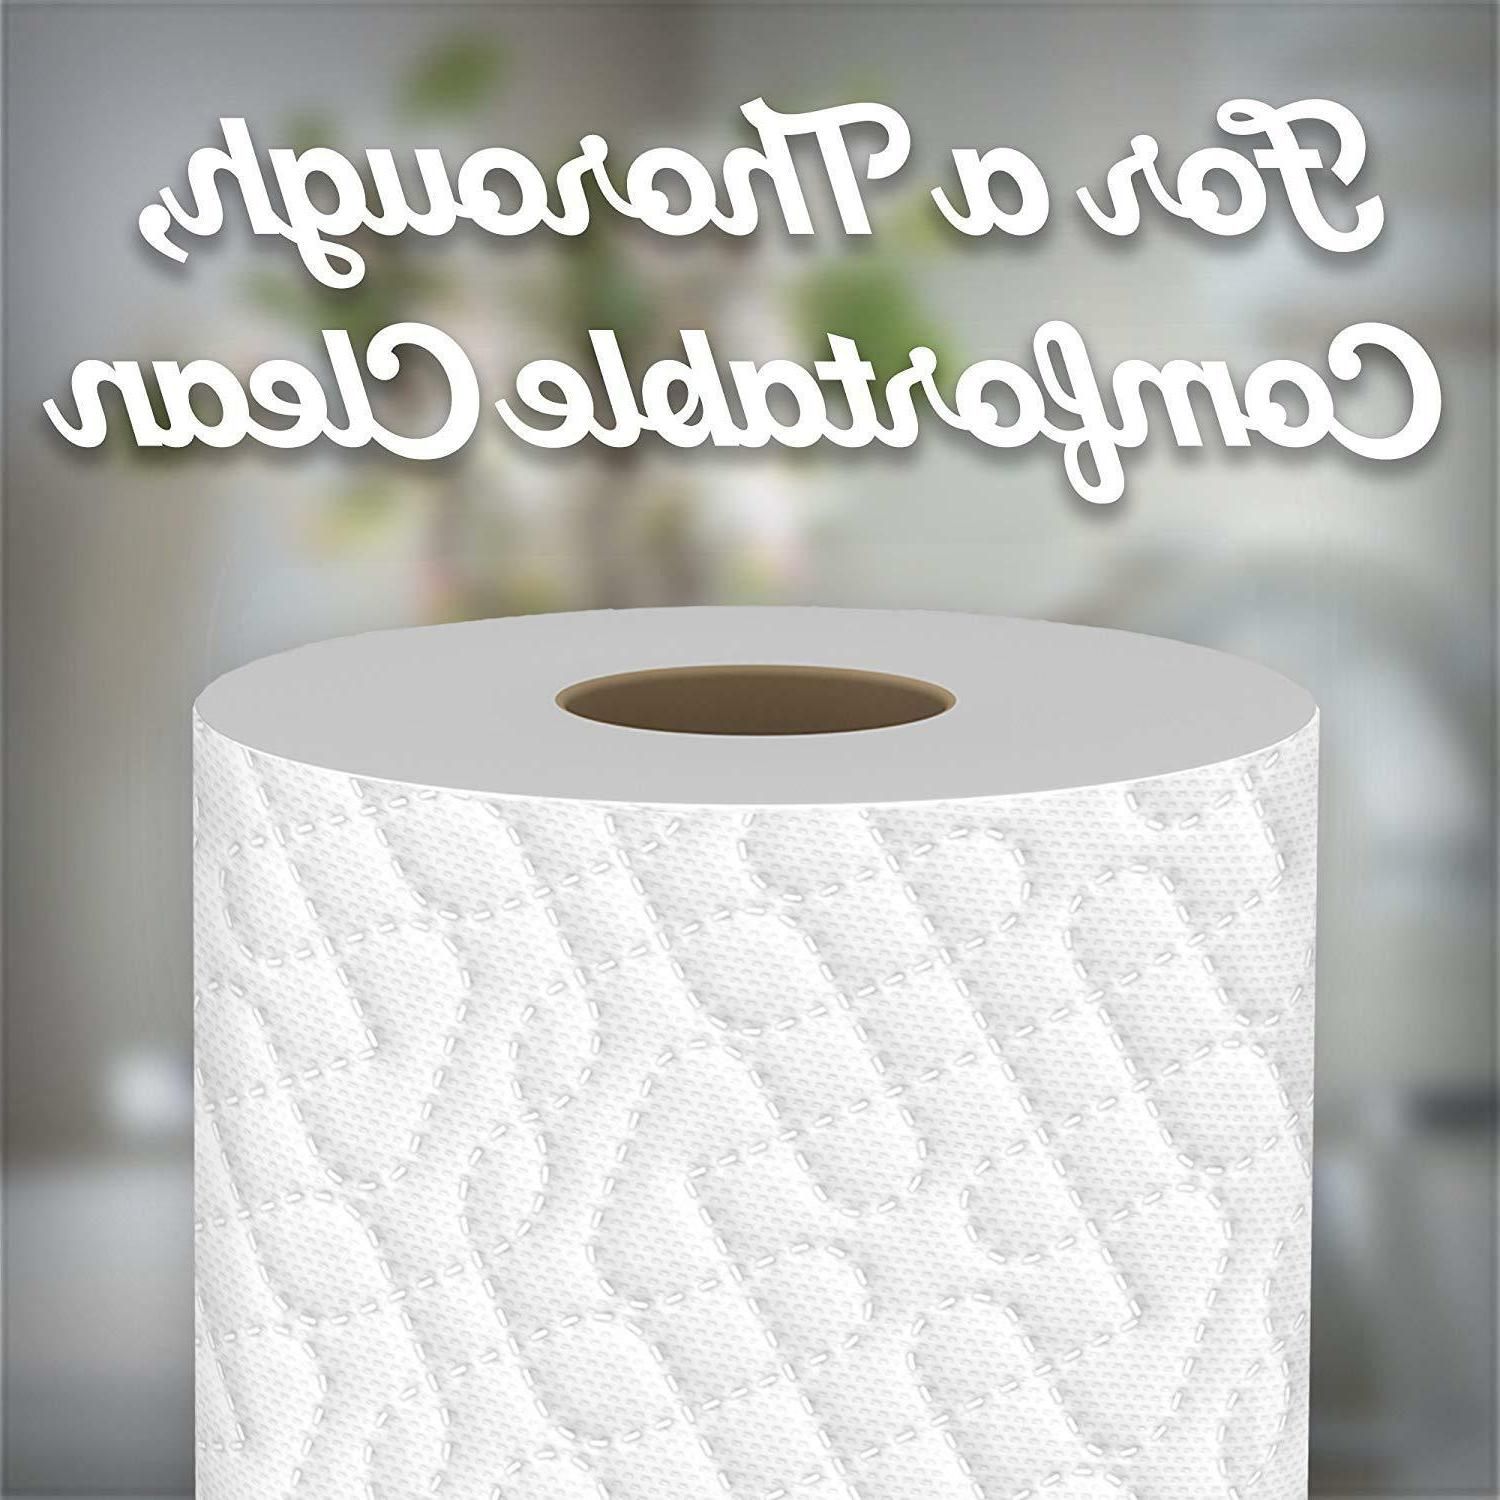 Quilted & Strong Toilet 48 = 96